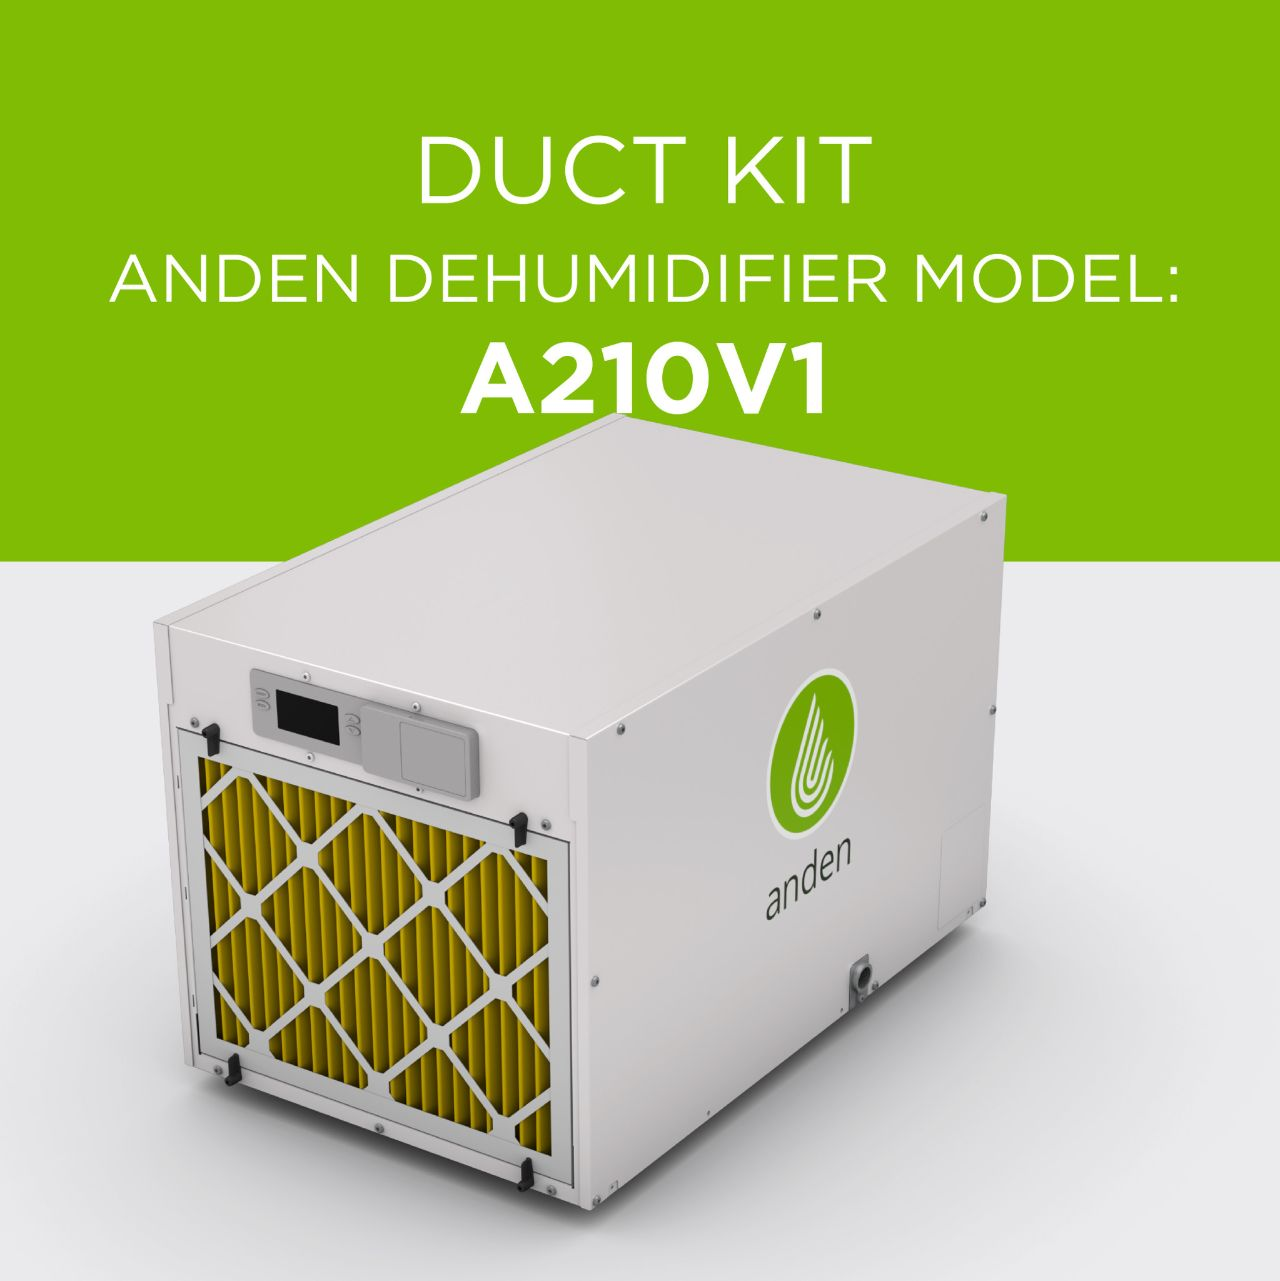 Anden-Dehumidifier-Model-A210V1-Grow-Room